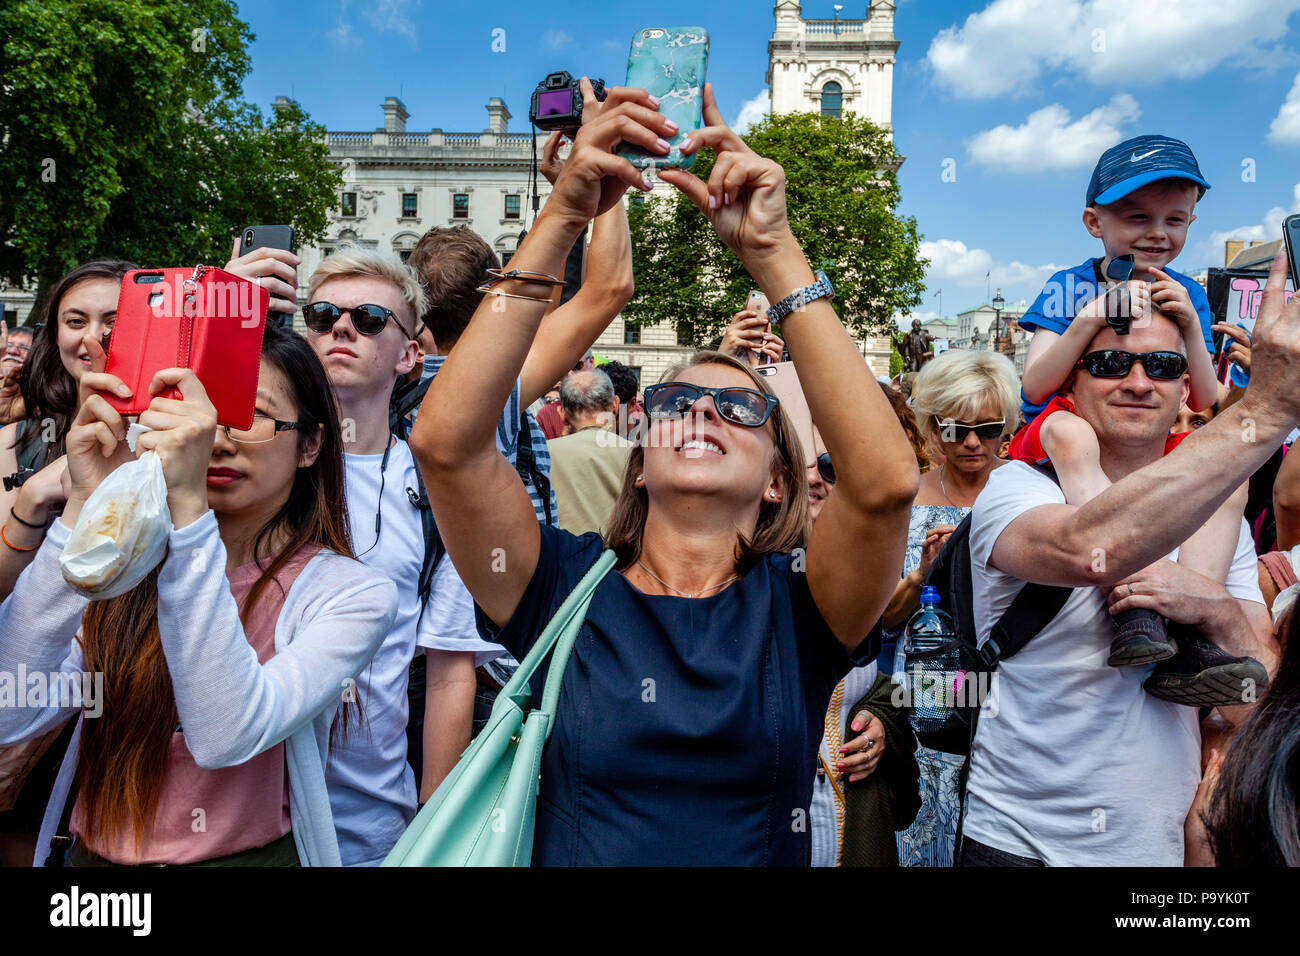 People Taking Photographs In Parliament Square, During An Anti Trump Protest, London, England - Stock Image